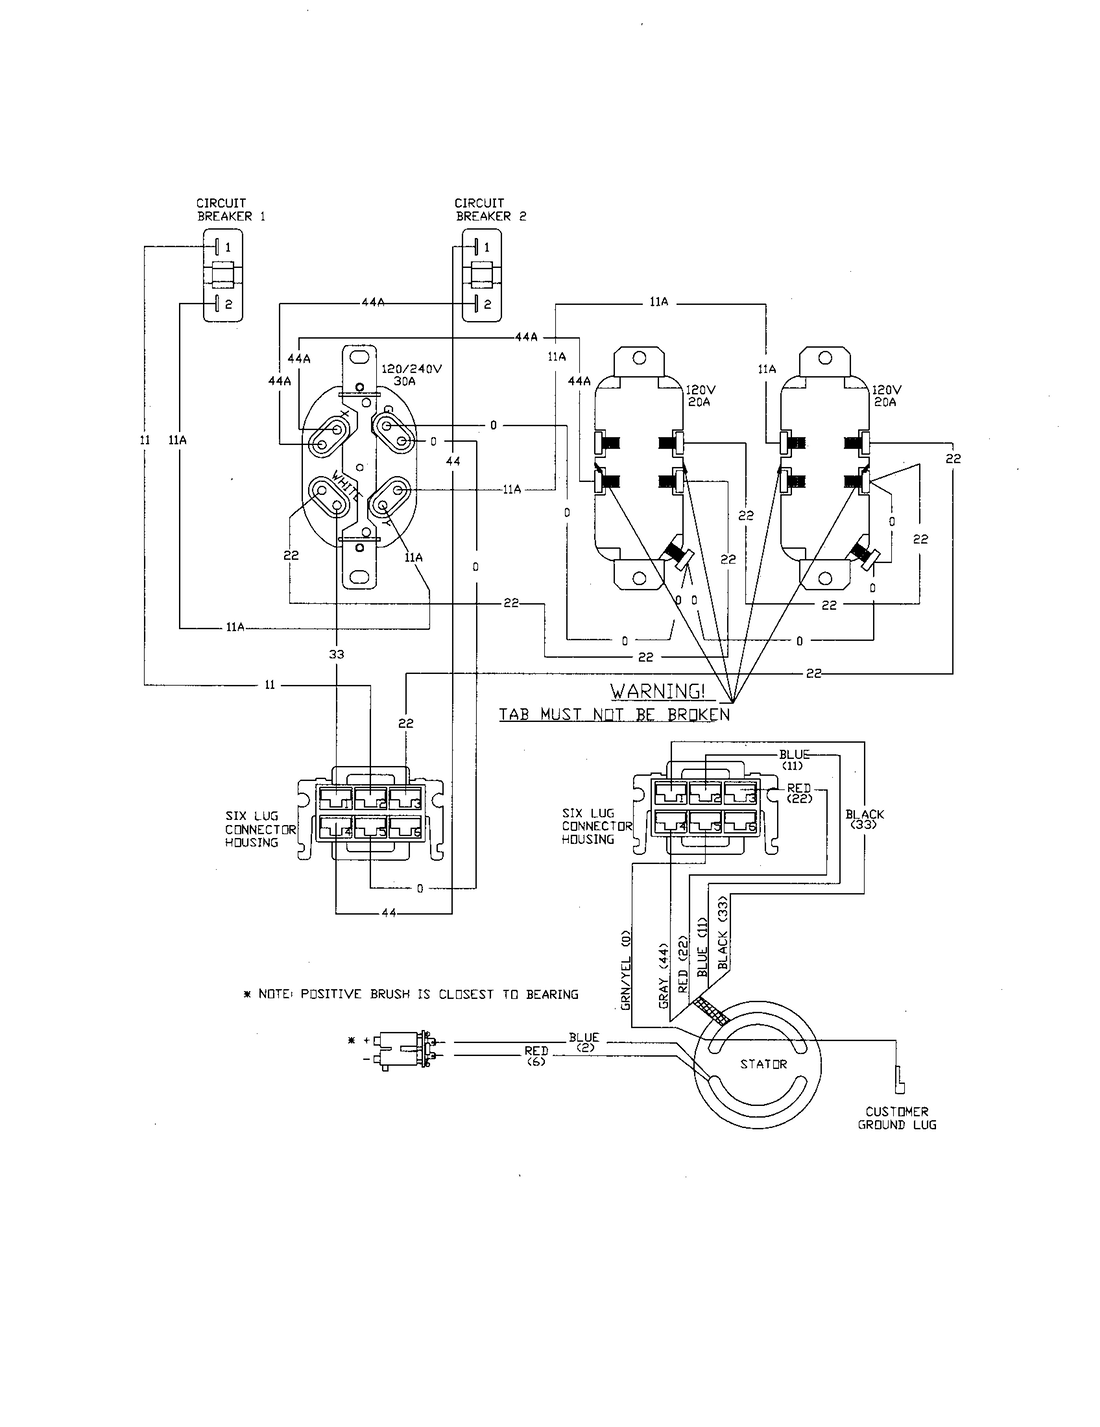 Ac Drawing At Free For Personal Use Of Diagram Wiring Power Window Wira 1100x1427 Generator Components